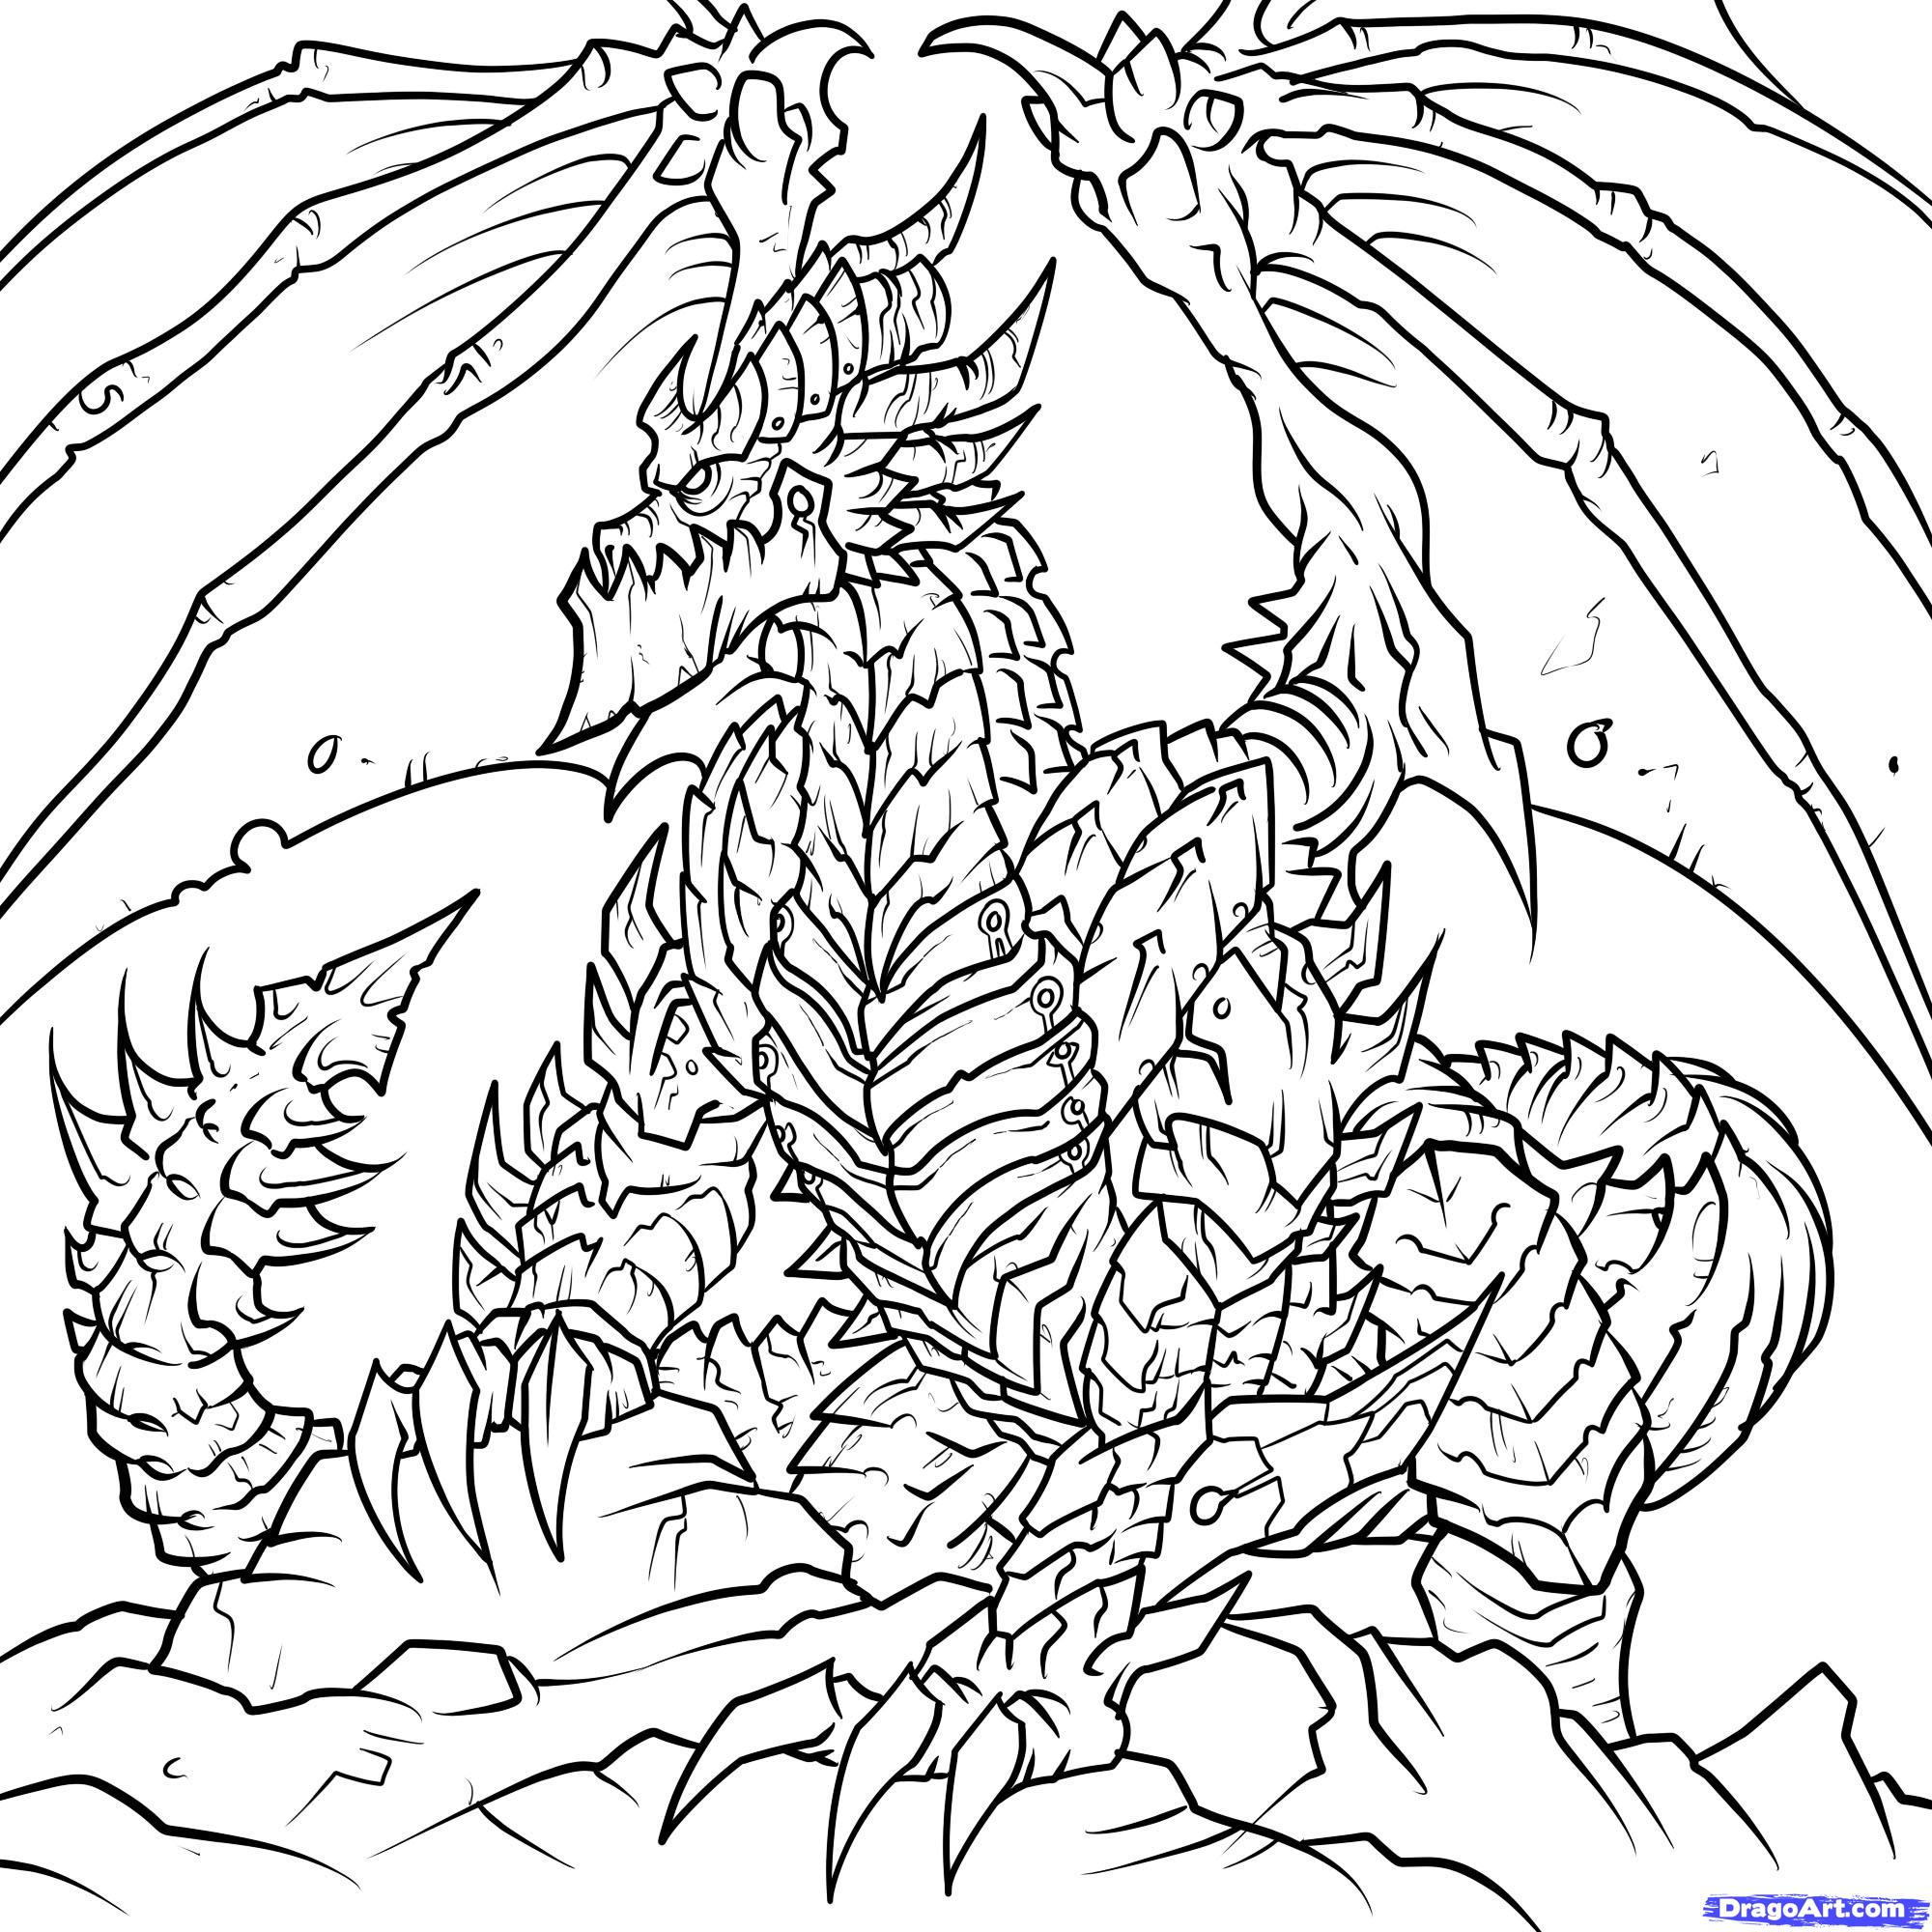 World Of Warcraft coloring #4, Download drawings